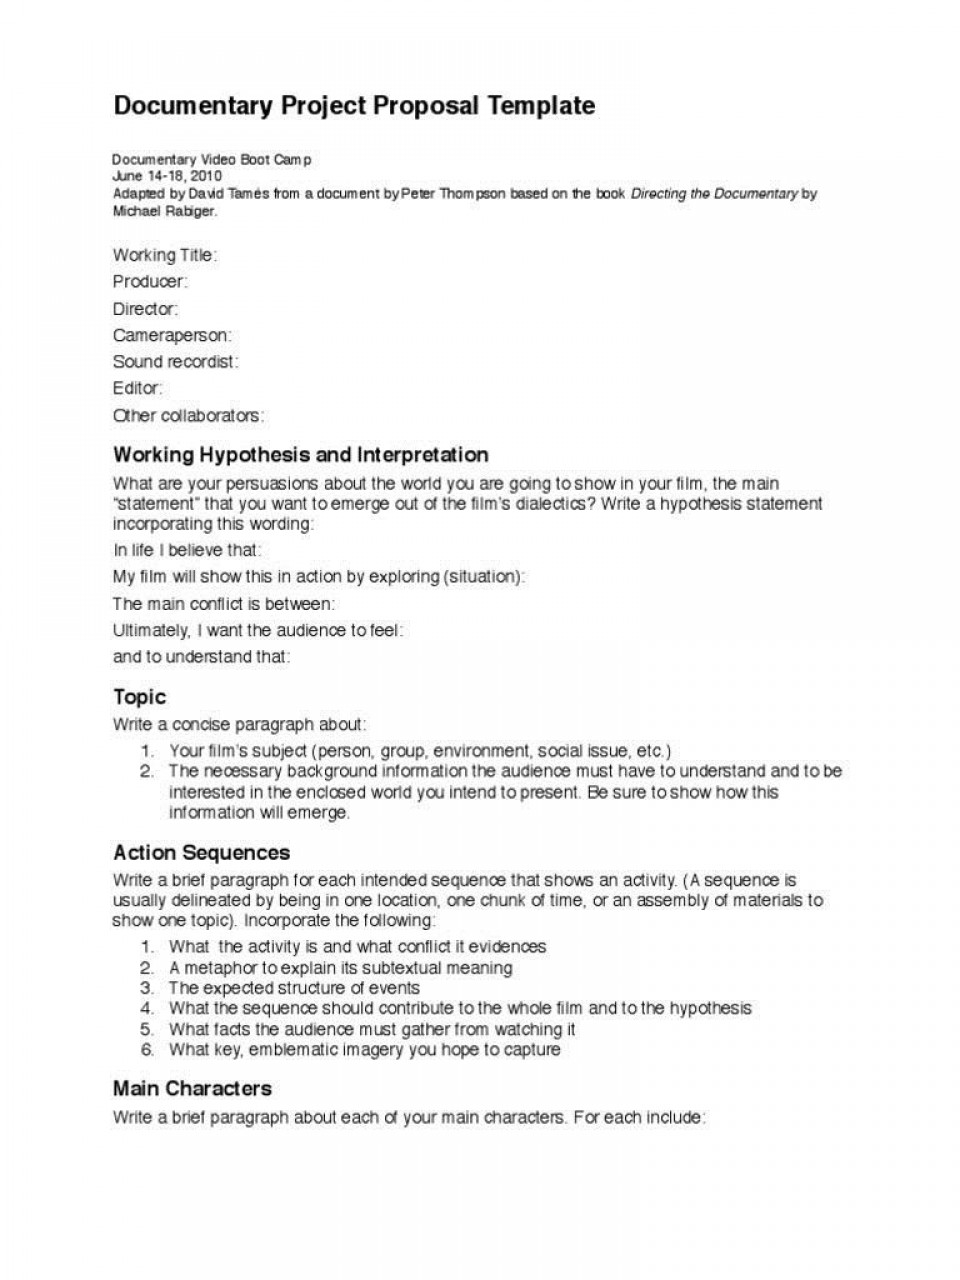 002 Frightening Statement Of Work Template Video Production High Definition 960